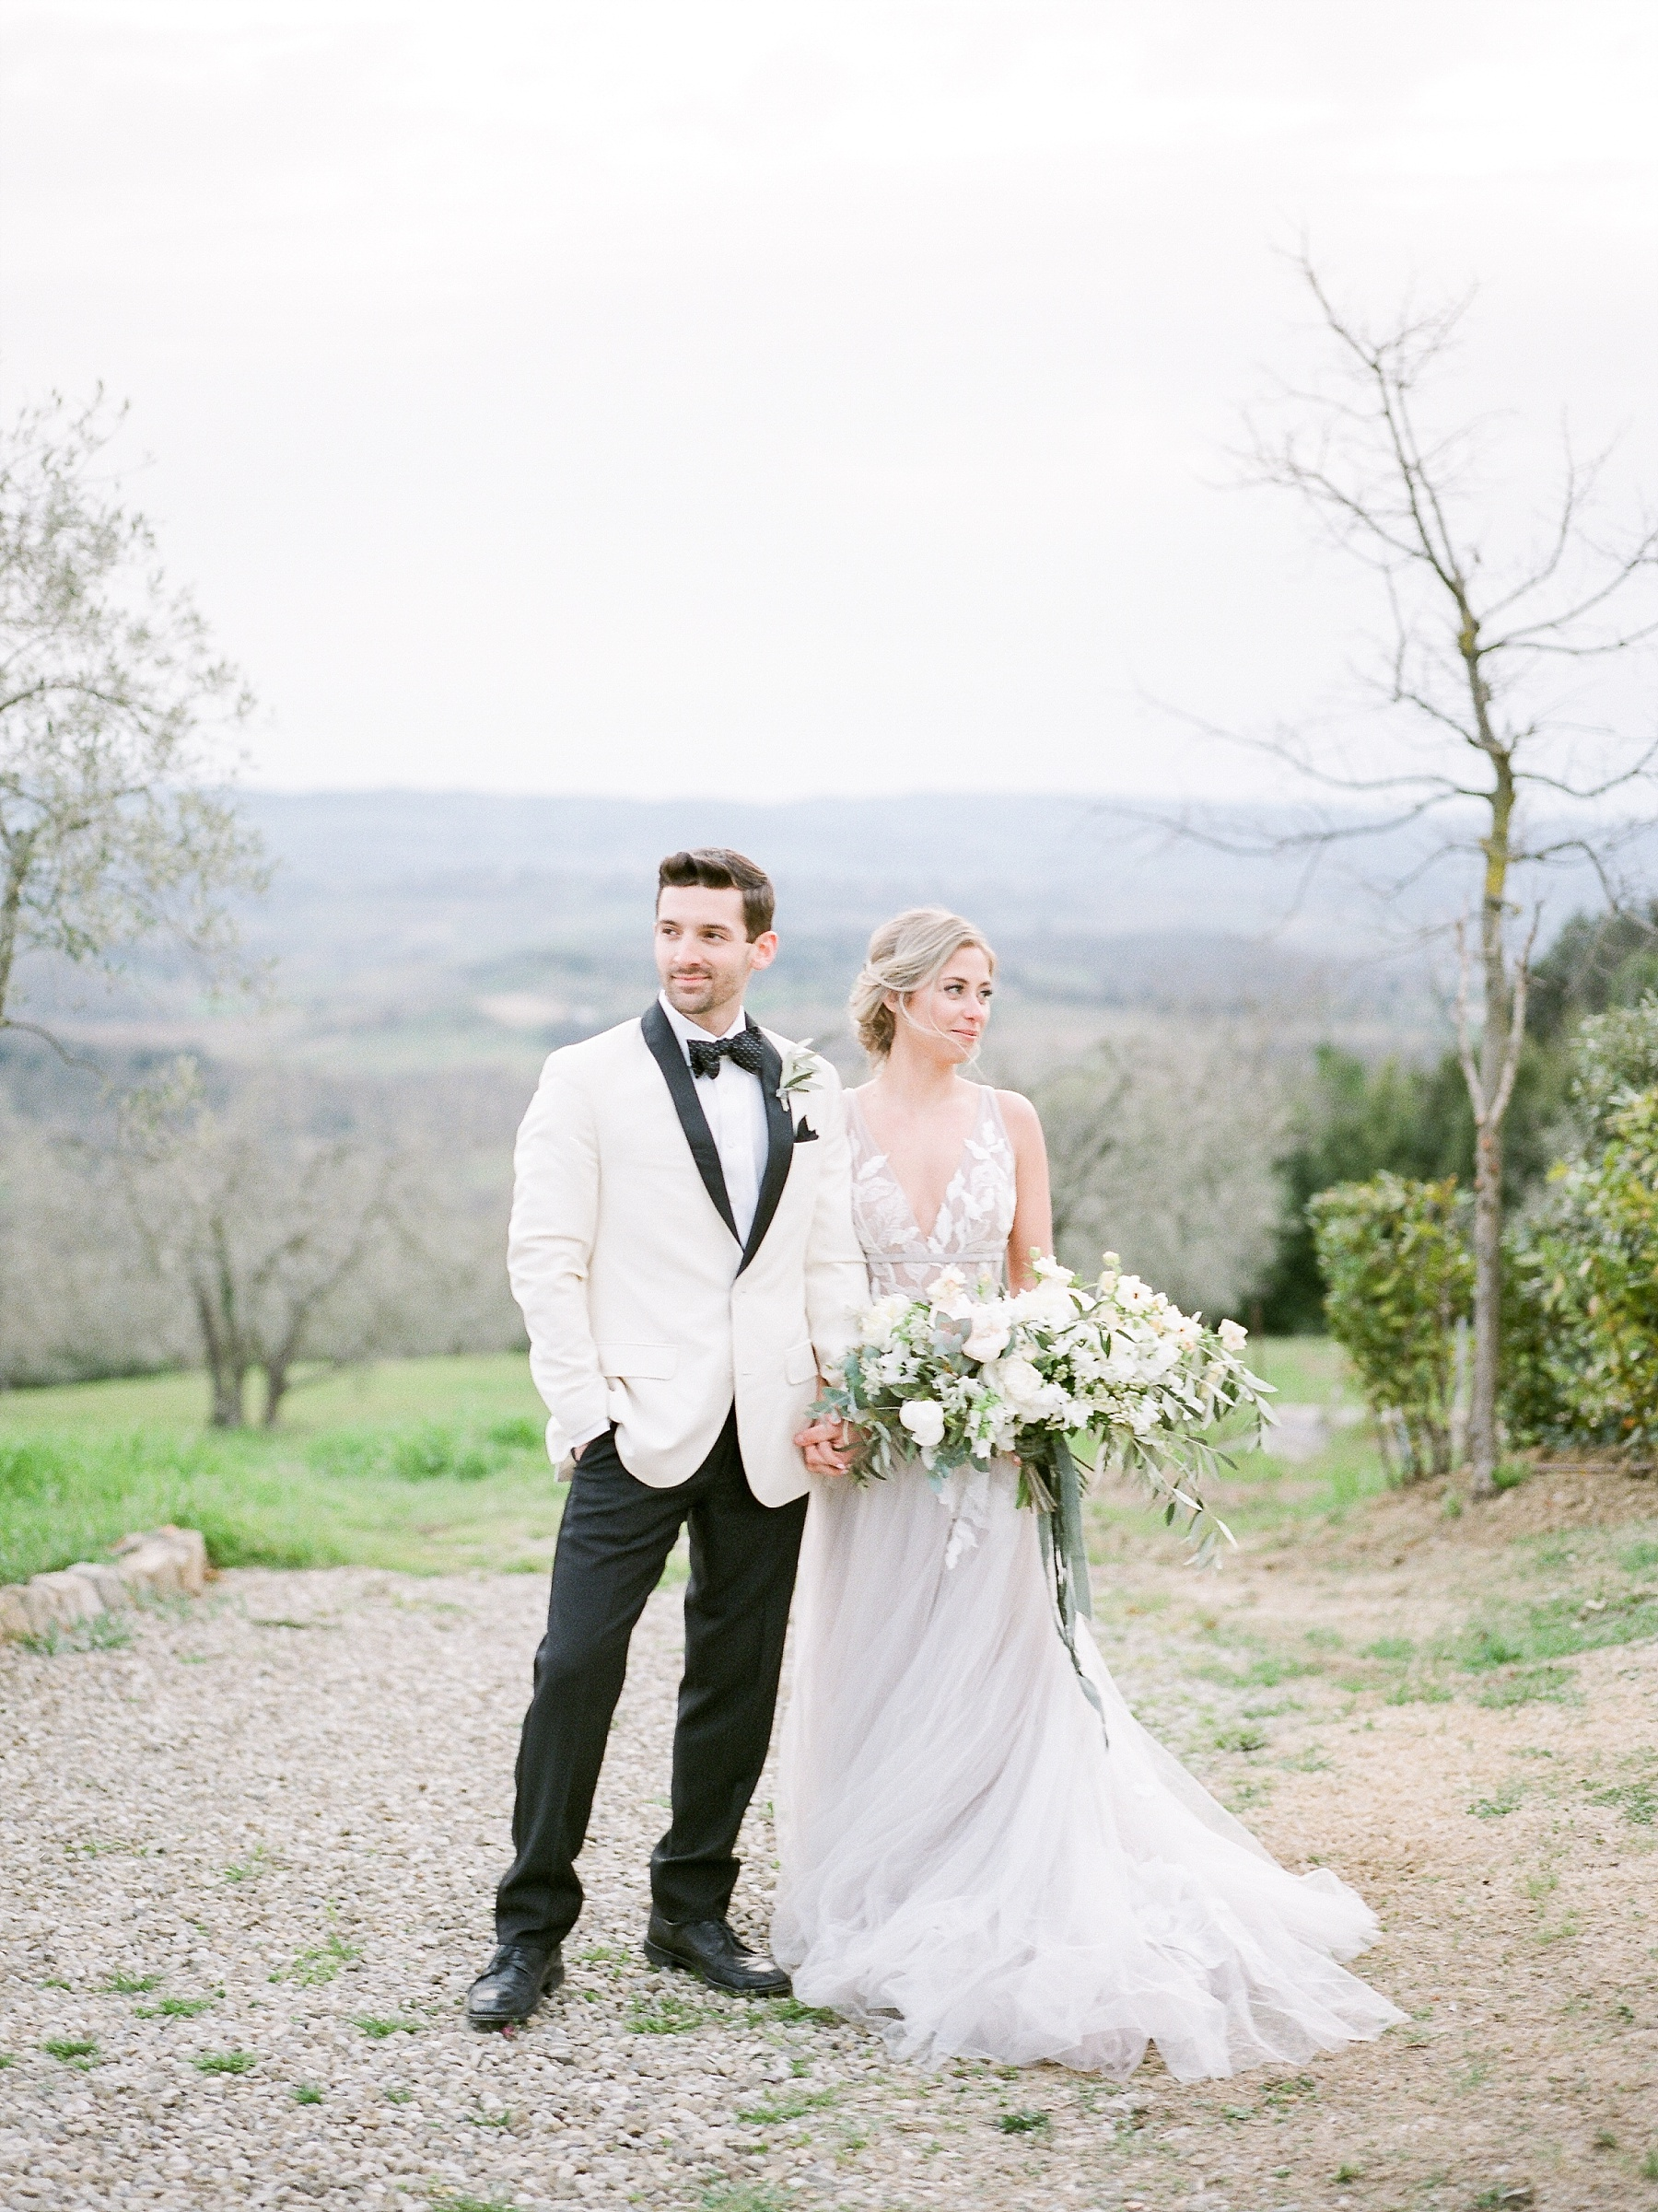 All White Destination Wedding in the Hills of Tuscany Italy at Estate Borgo Petrognano by Kelsi Kliethermes Photography_0065.jpg